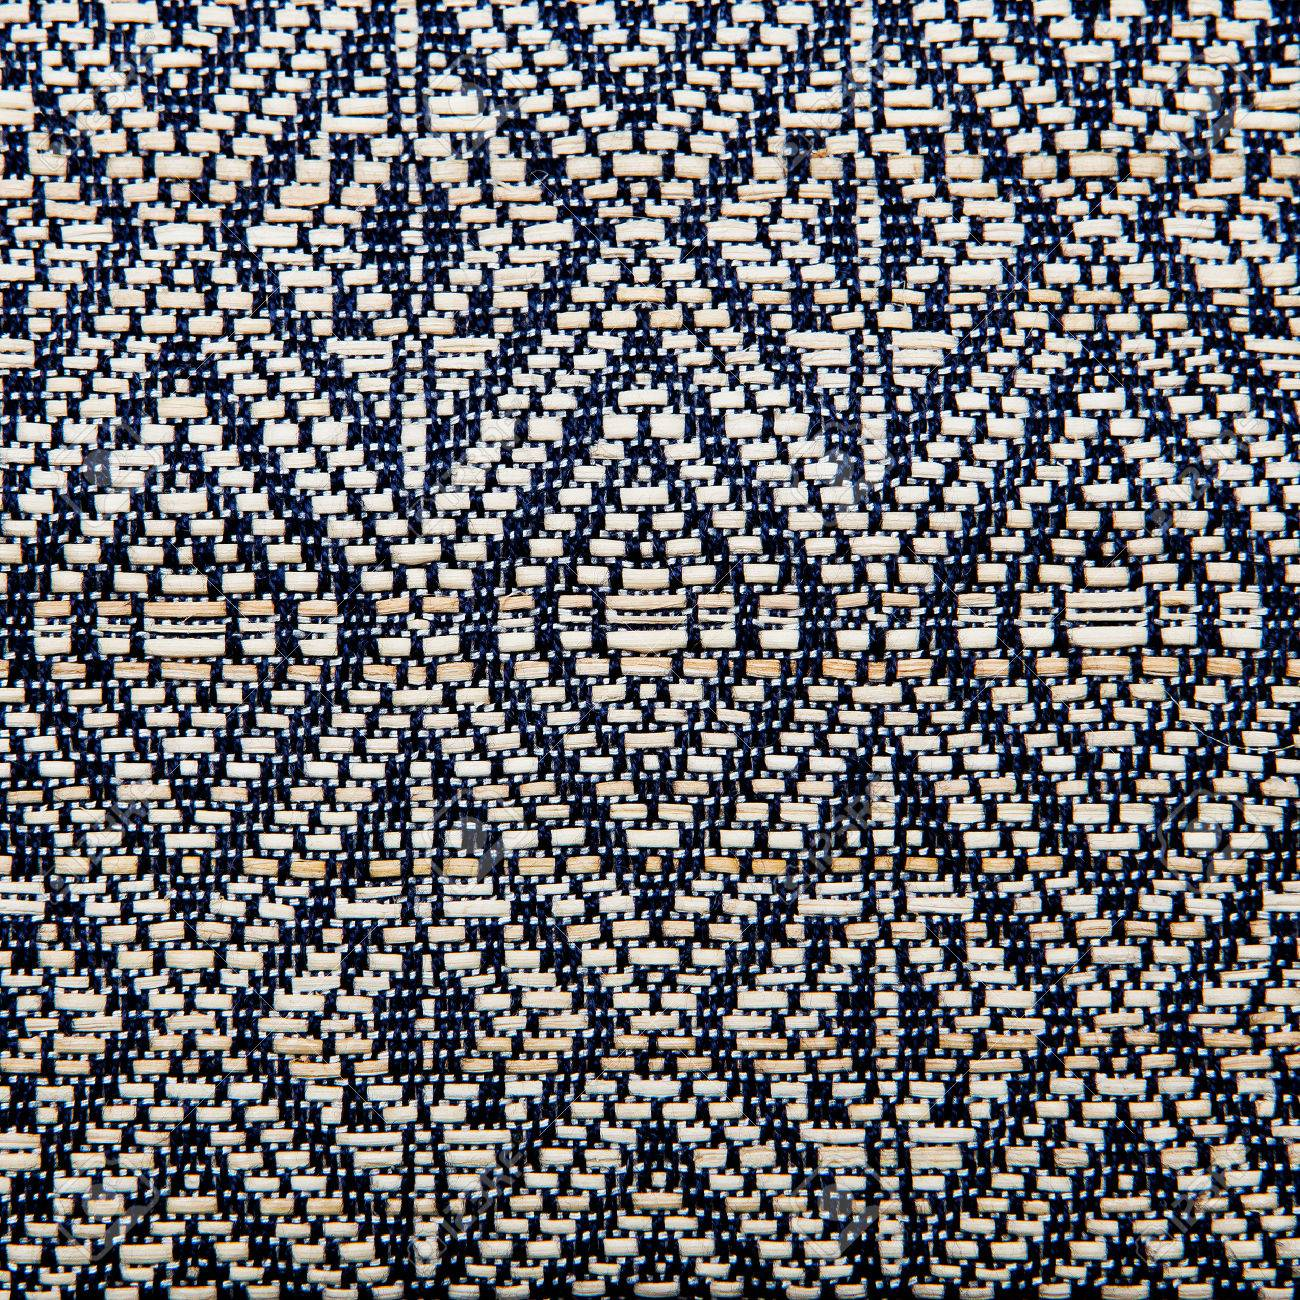 Colorful african peruvian style rug surface close up  More of this motif   more textiles in my port Stock Photo - 22582161